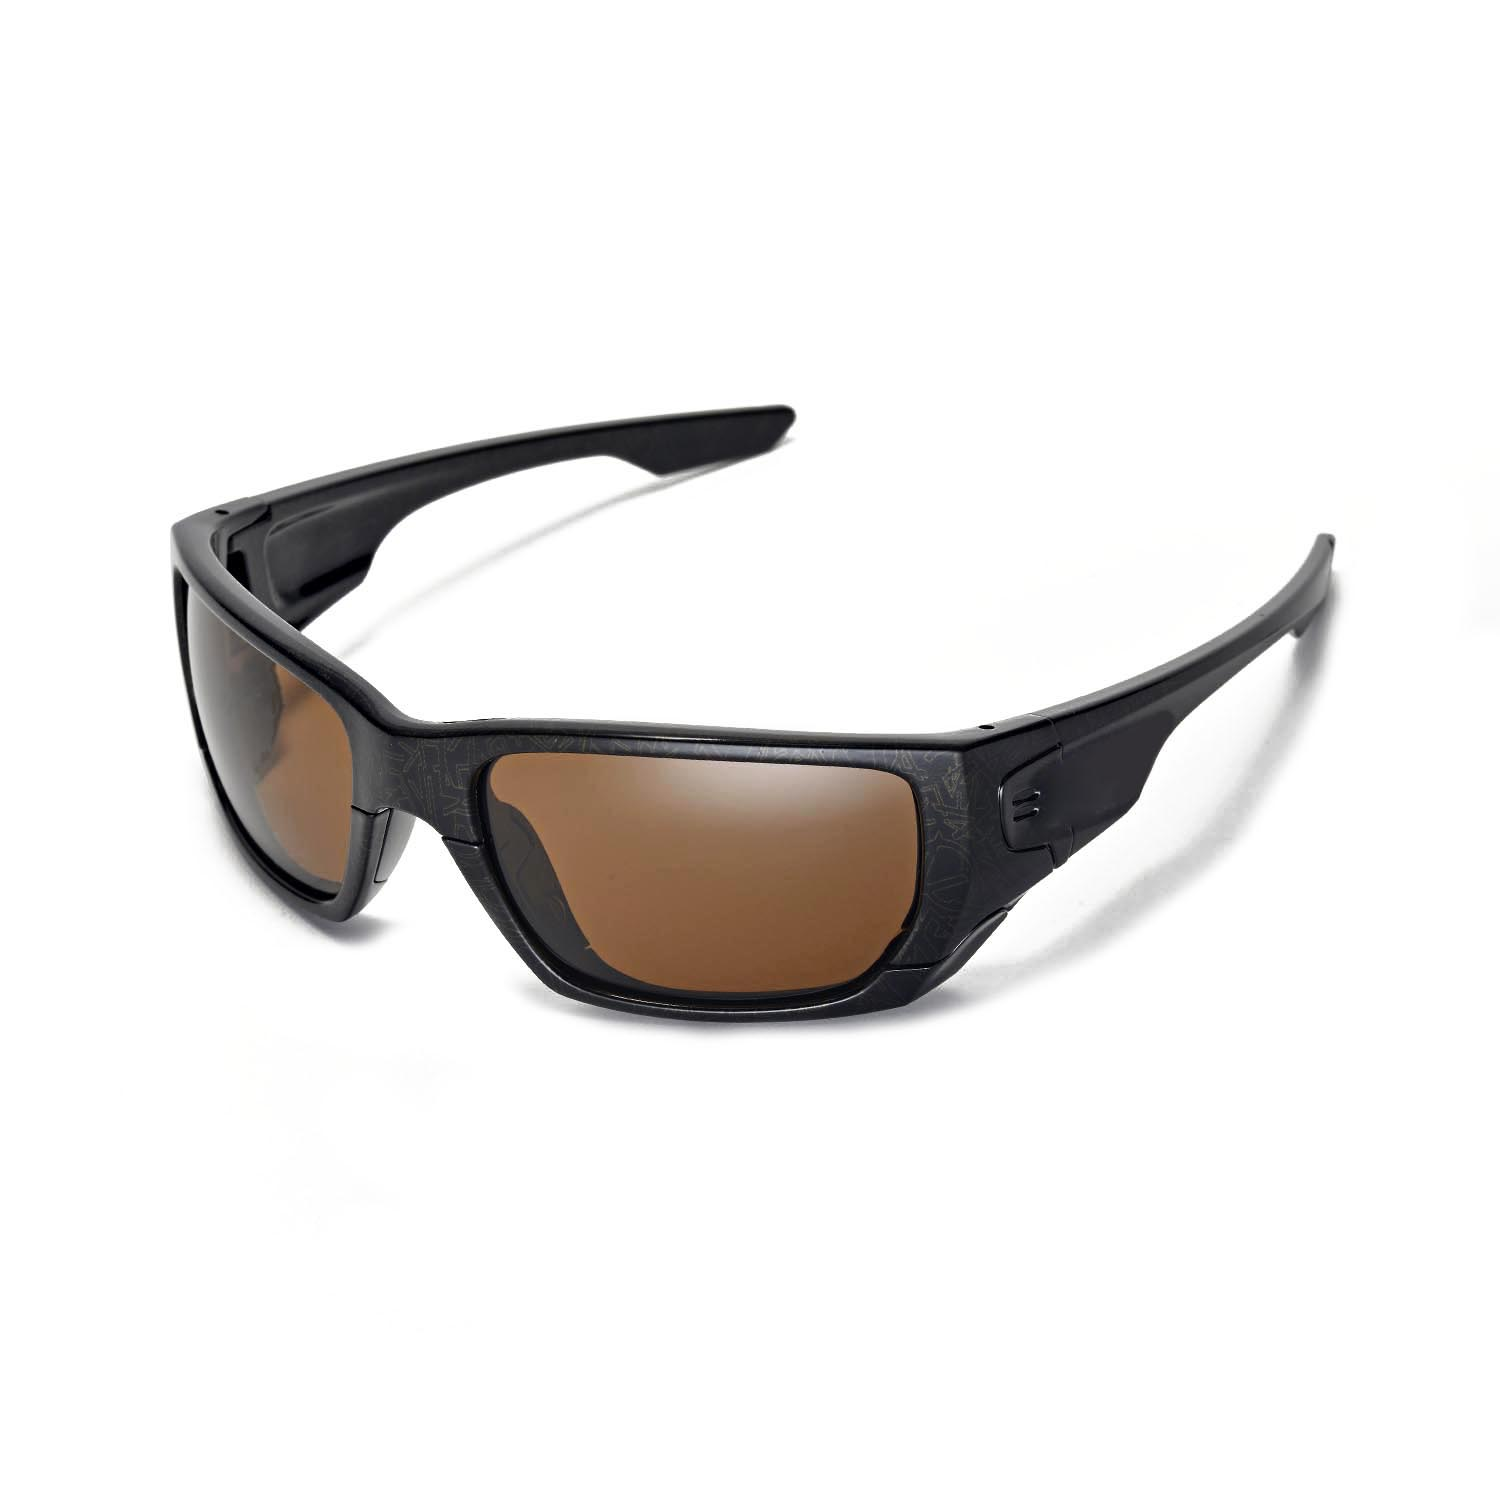 a025fa2f0a Details about Walleva Polarized Brown Lenses For Oakley Style Switch  Sunglasses